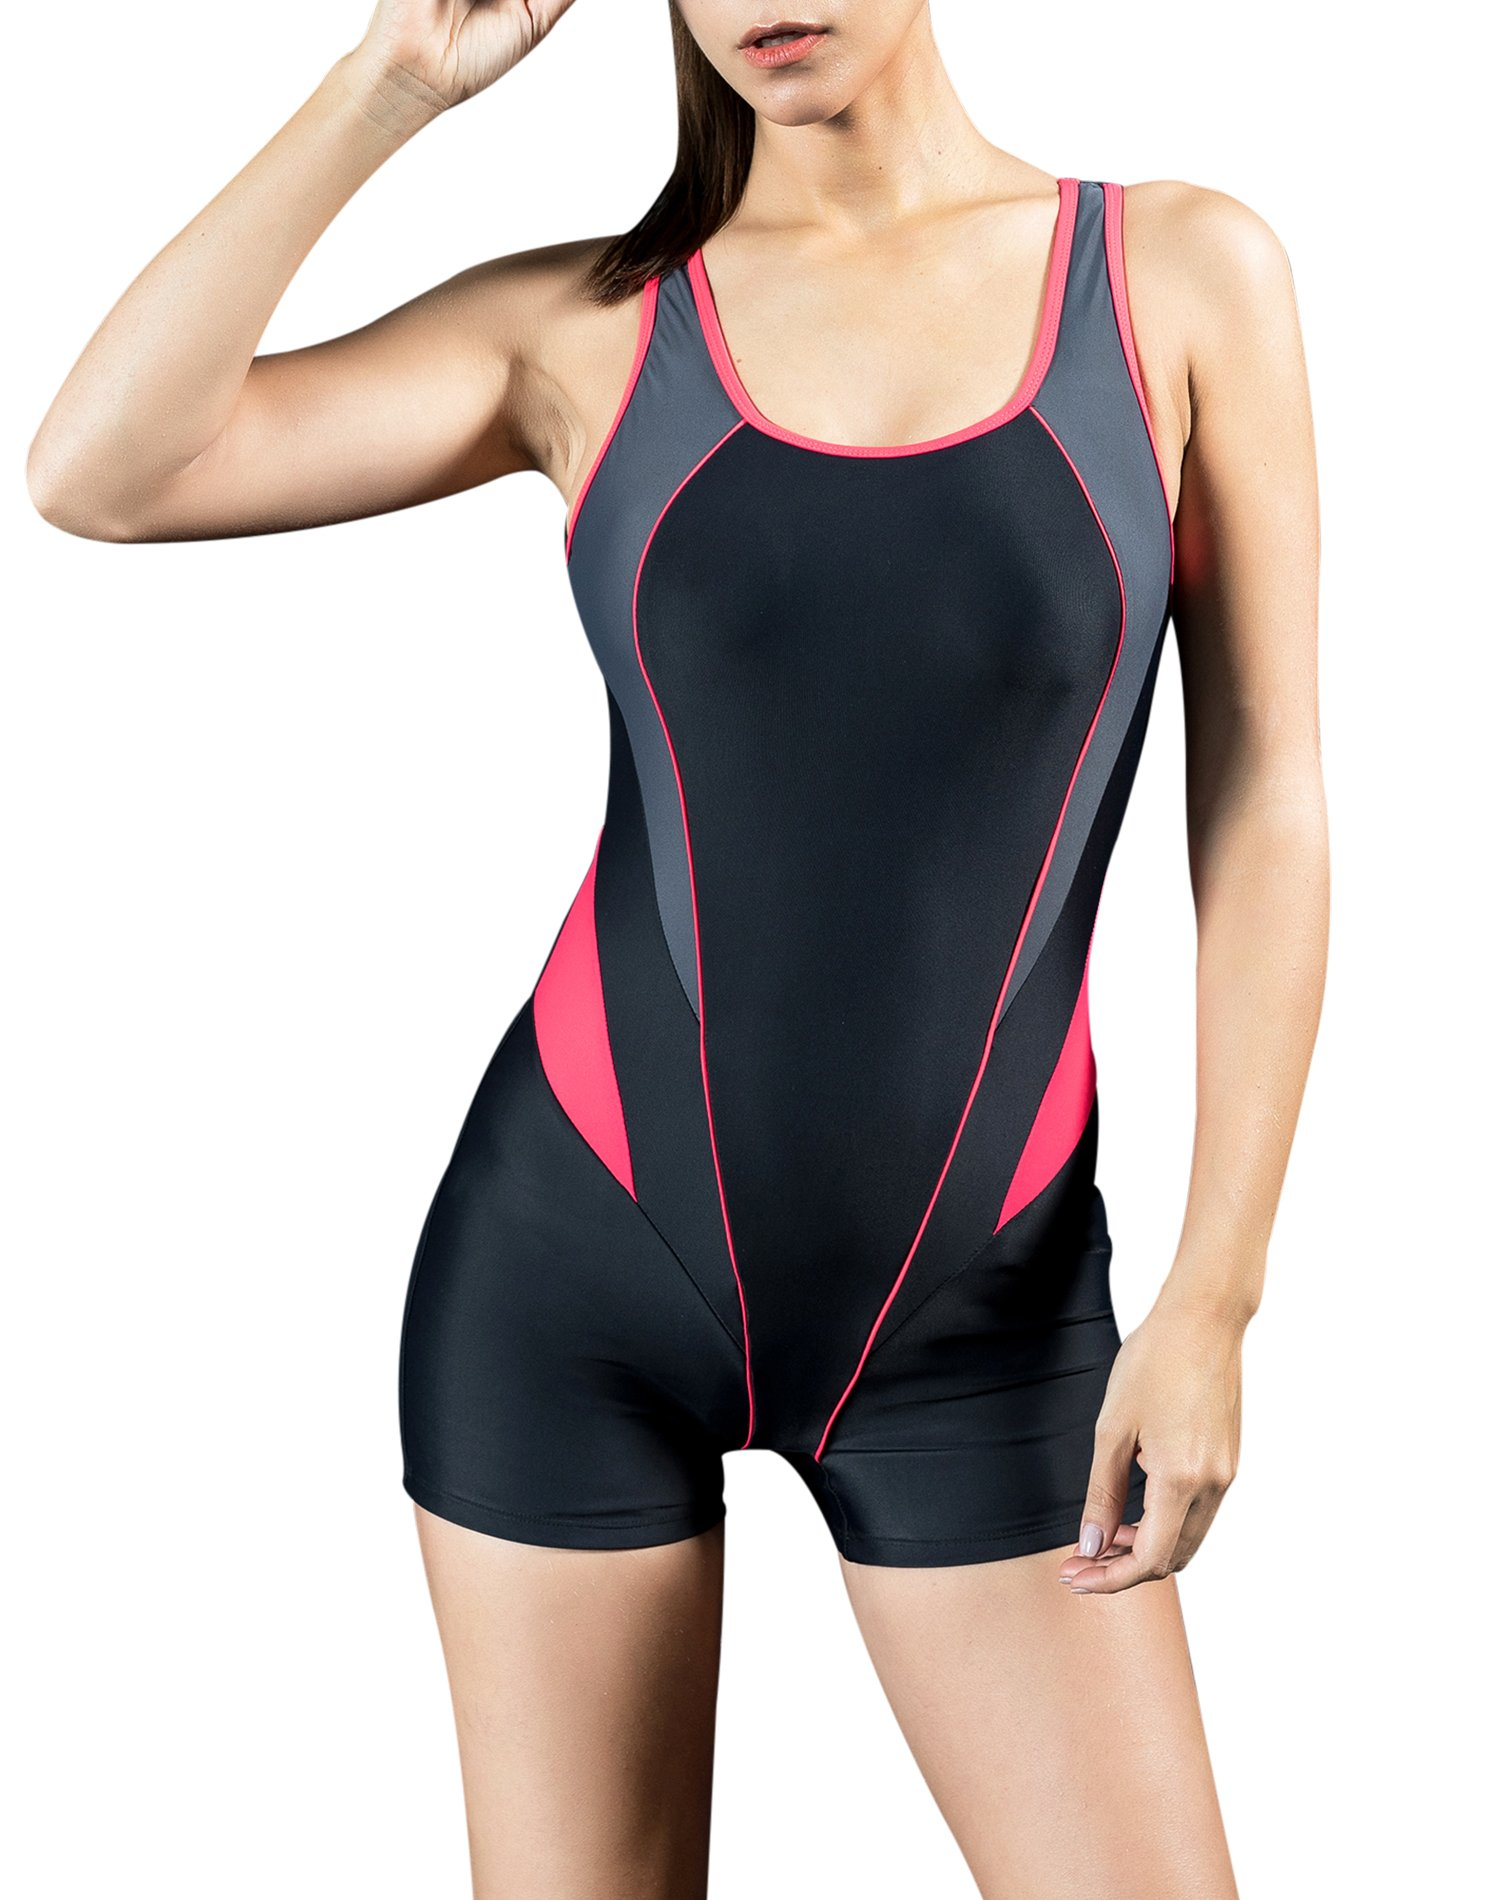 056cdbea2b Uhnice Women's Athletic One Piece Swimsuit Backless Strap Splice Bathing  Suit (Large(US8-10), Black/Red)